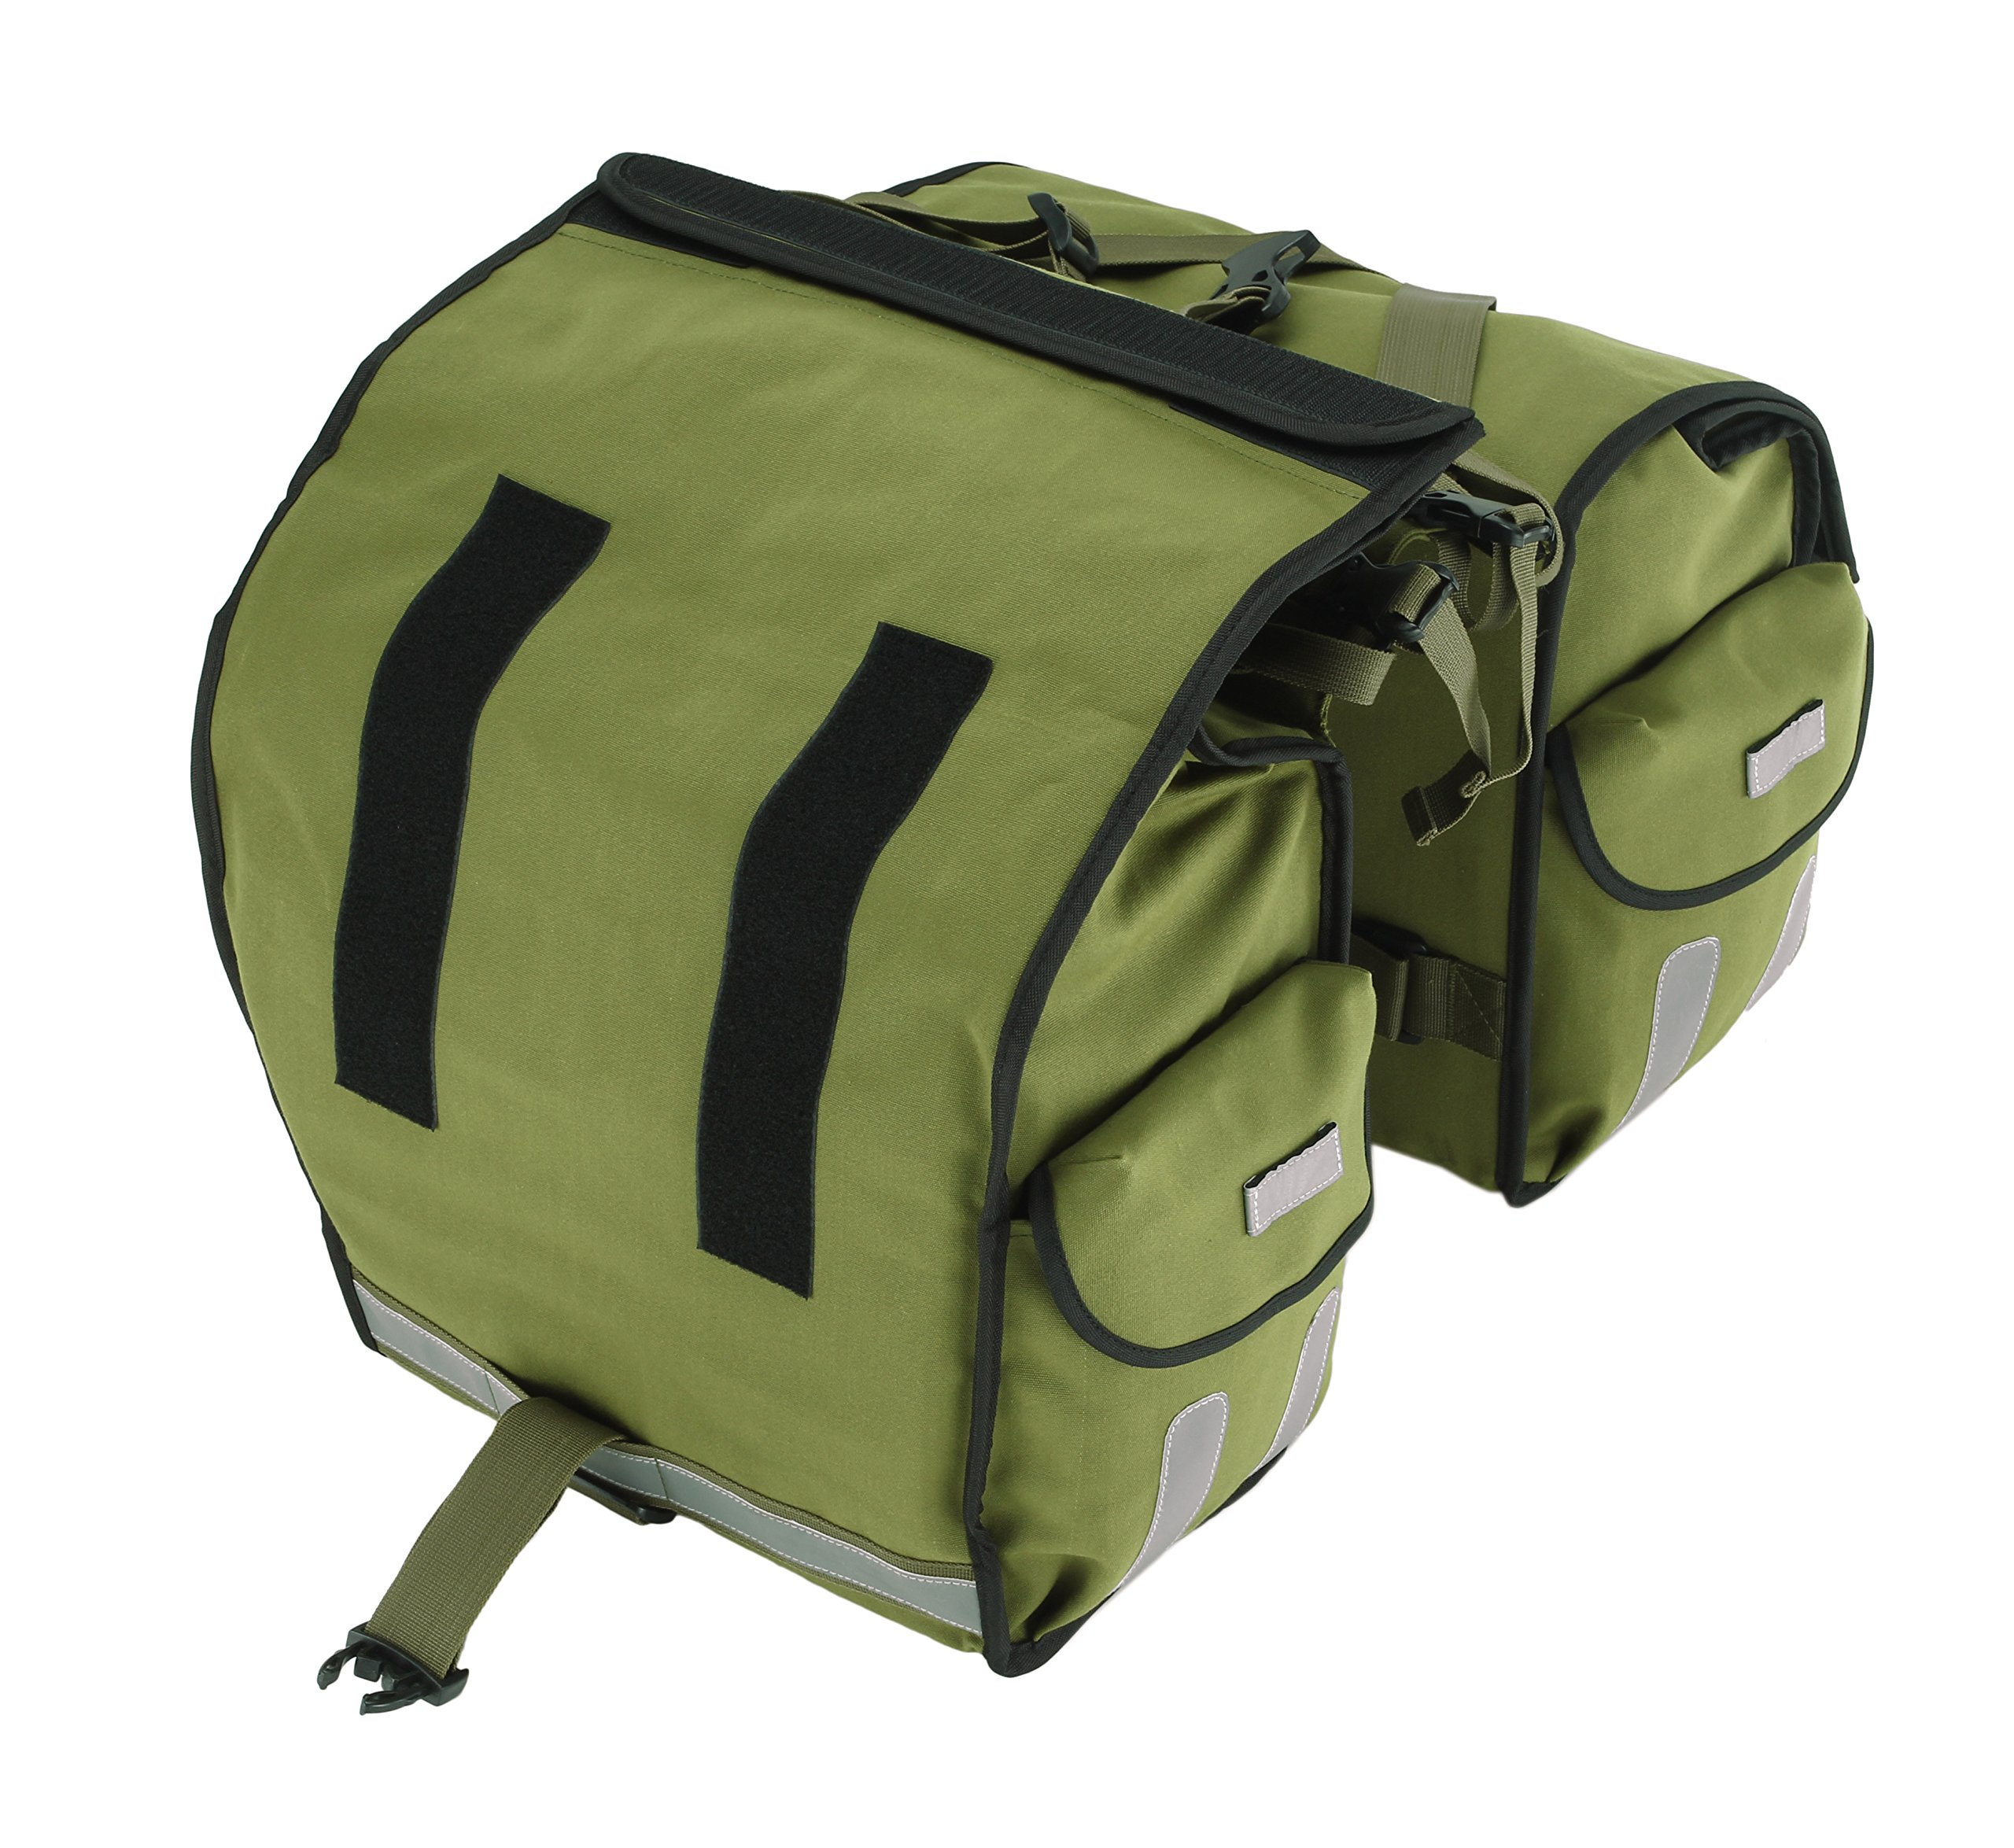 Roswheel 14686 Expedition Series Bike Rear Rack Bag Bicycle Double Panniers Cargo Trunk Bag by Roswheel (Image #7)